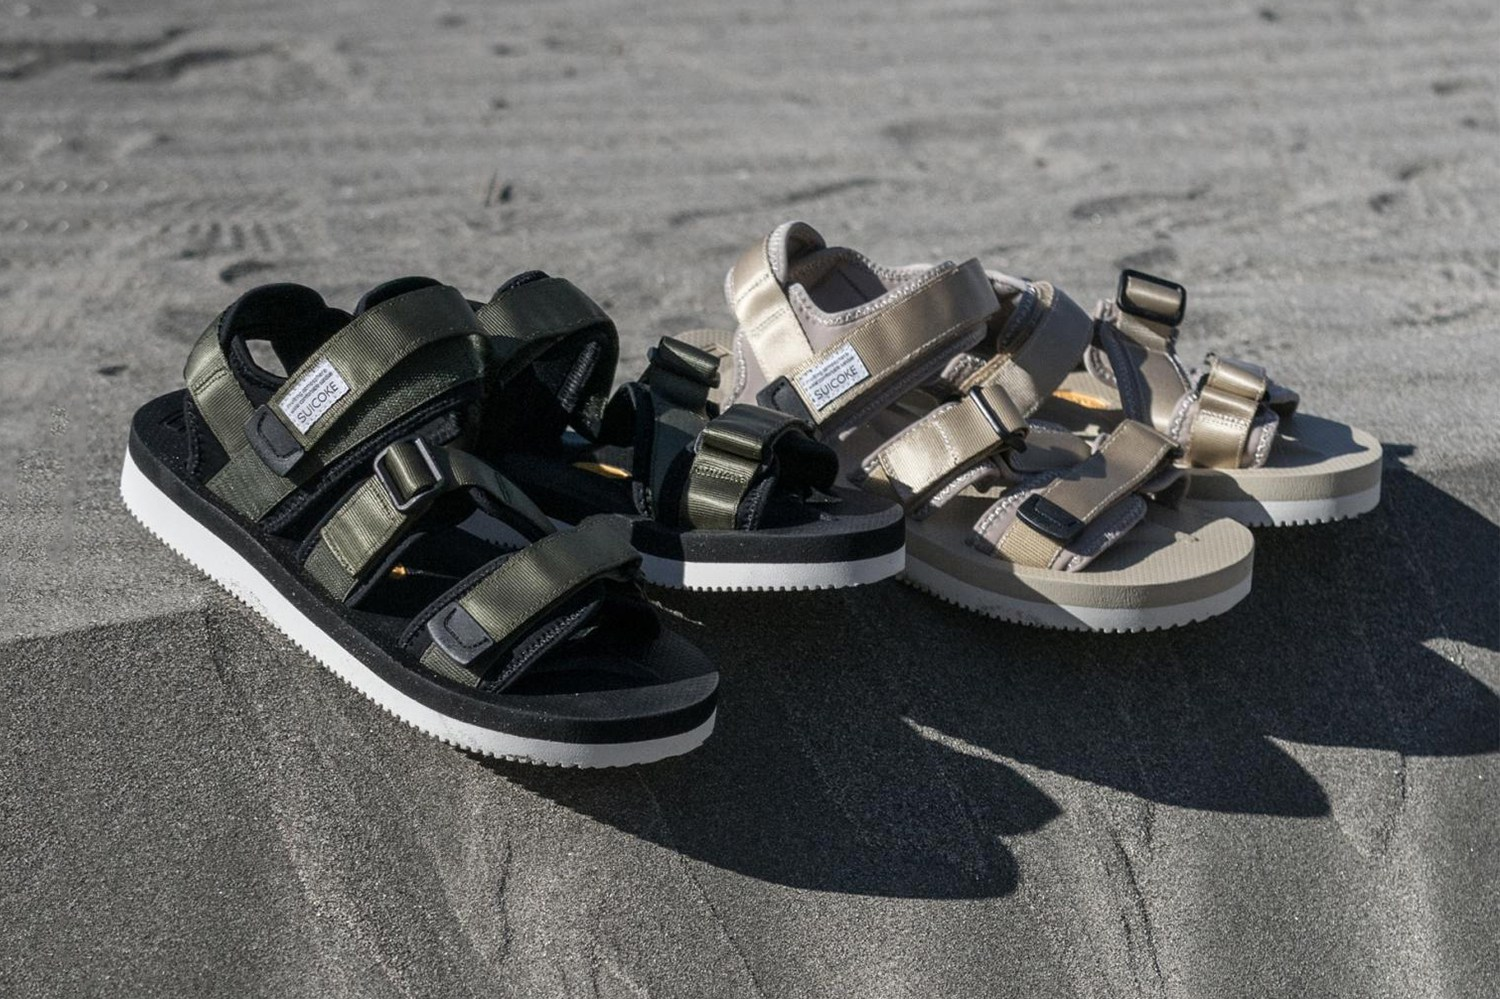 monkey time x SUICOKE KISEE Sandals & SHO Slides